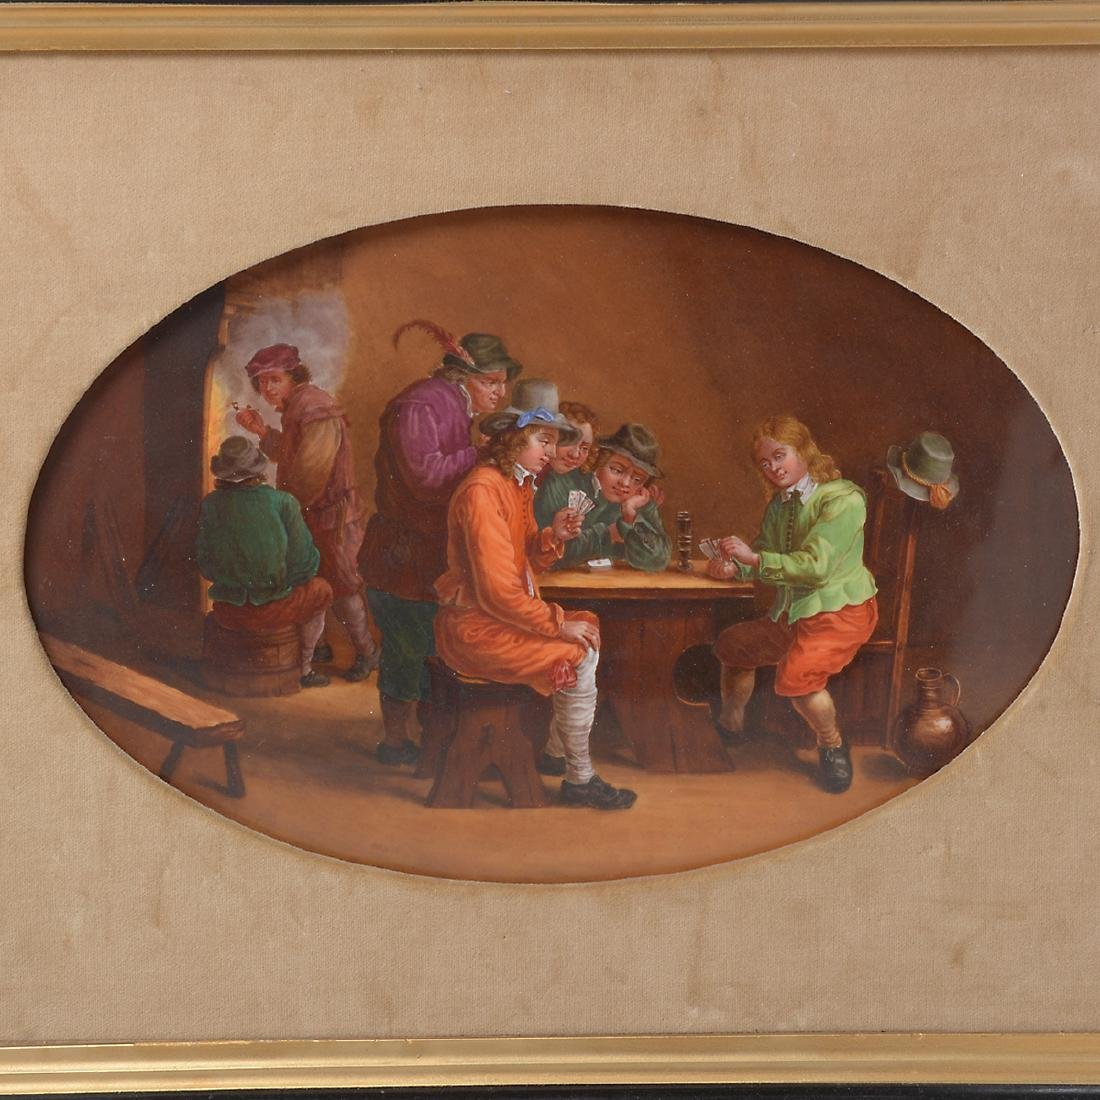 French Porcelain Plaque of Tavern Scene - 2